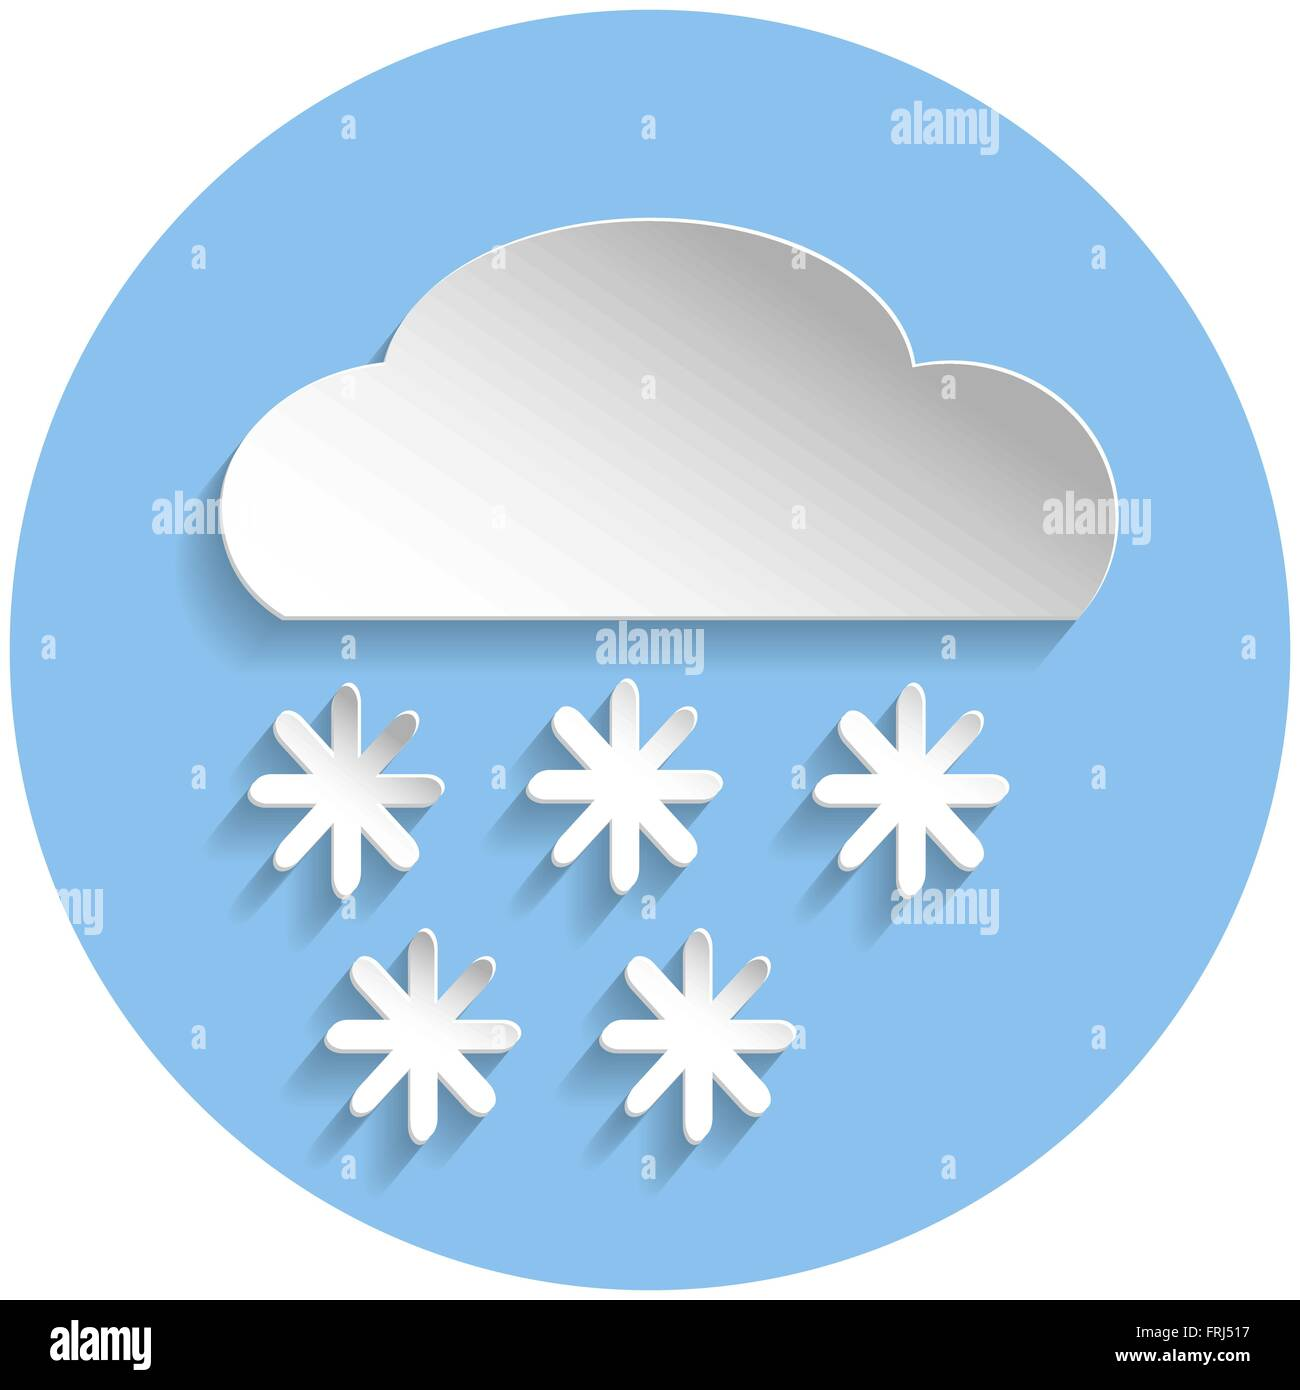 Snowflake cloud icon in paper style on blue round background - Stock Image